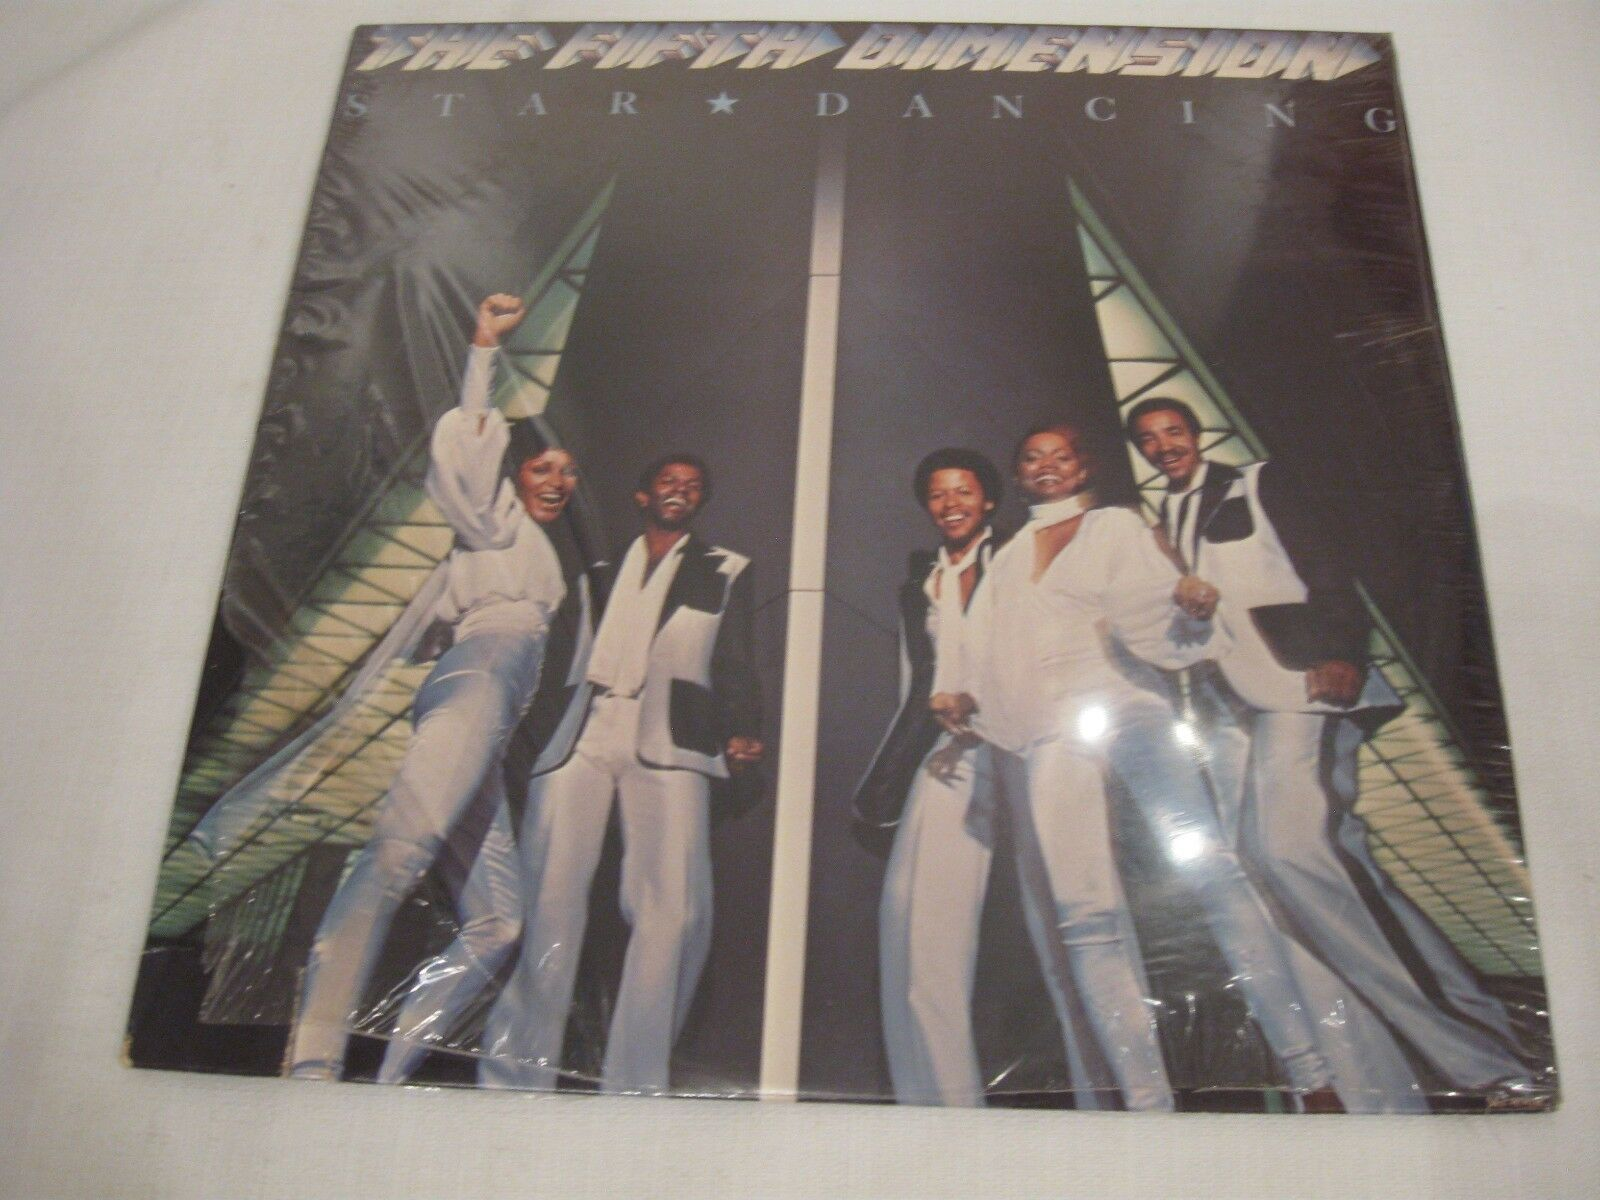 The Fifth Dimension Star Dancing Motown M7-896R Stereo Vinyl Record LP SEALED